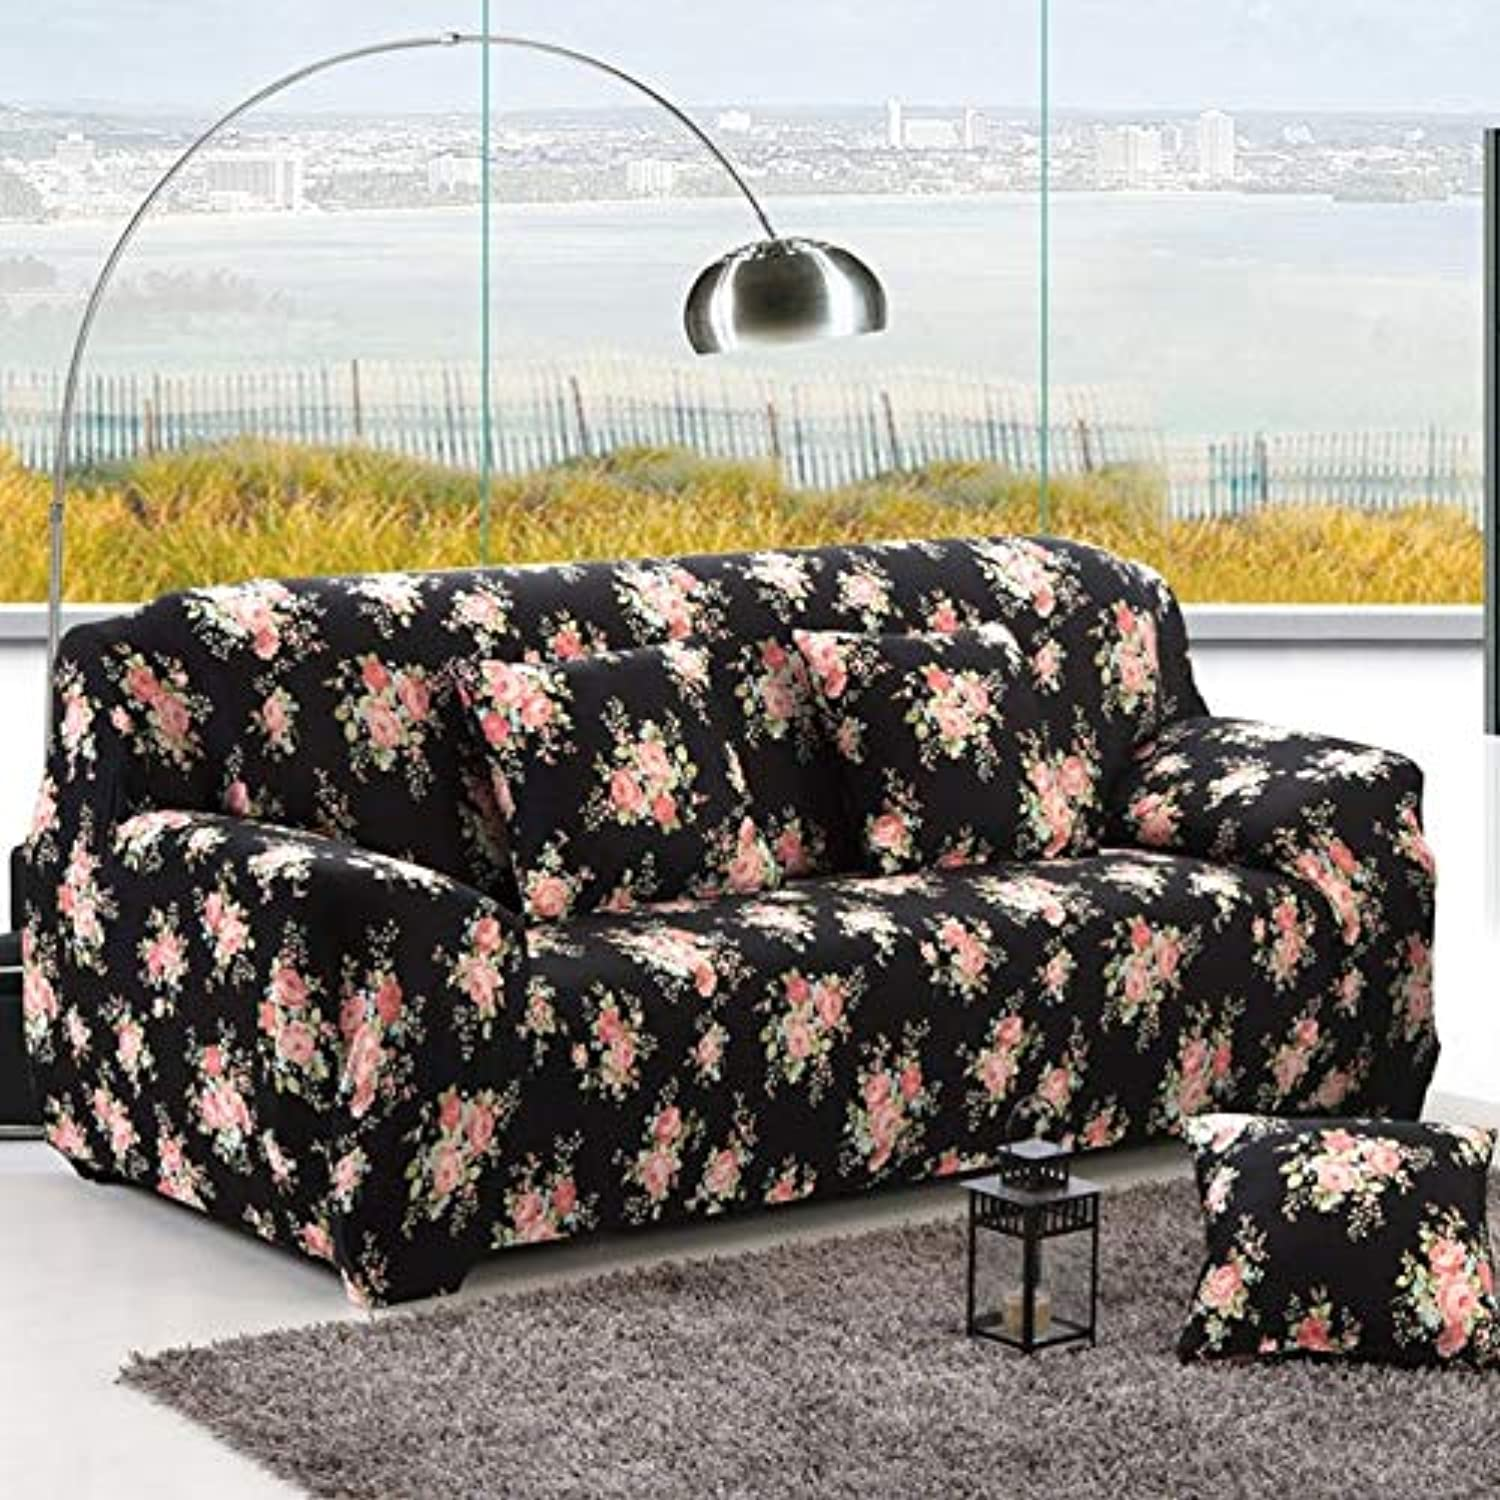 Hot Living Room Sofa Cover USA Style Slipcover Elastic Congreen Tight All-Inclusive 1 2 3 4-Seat Single Two Three Four-Seater   5, Two seat